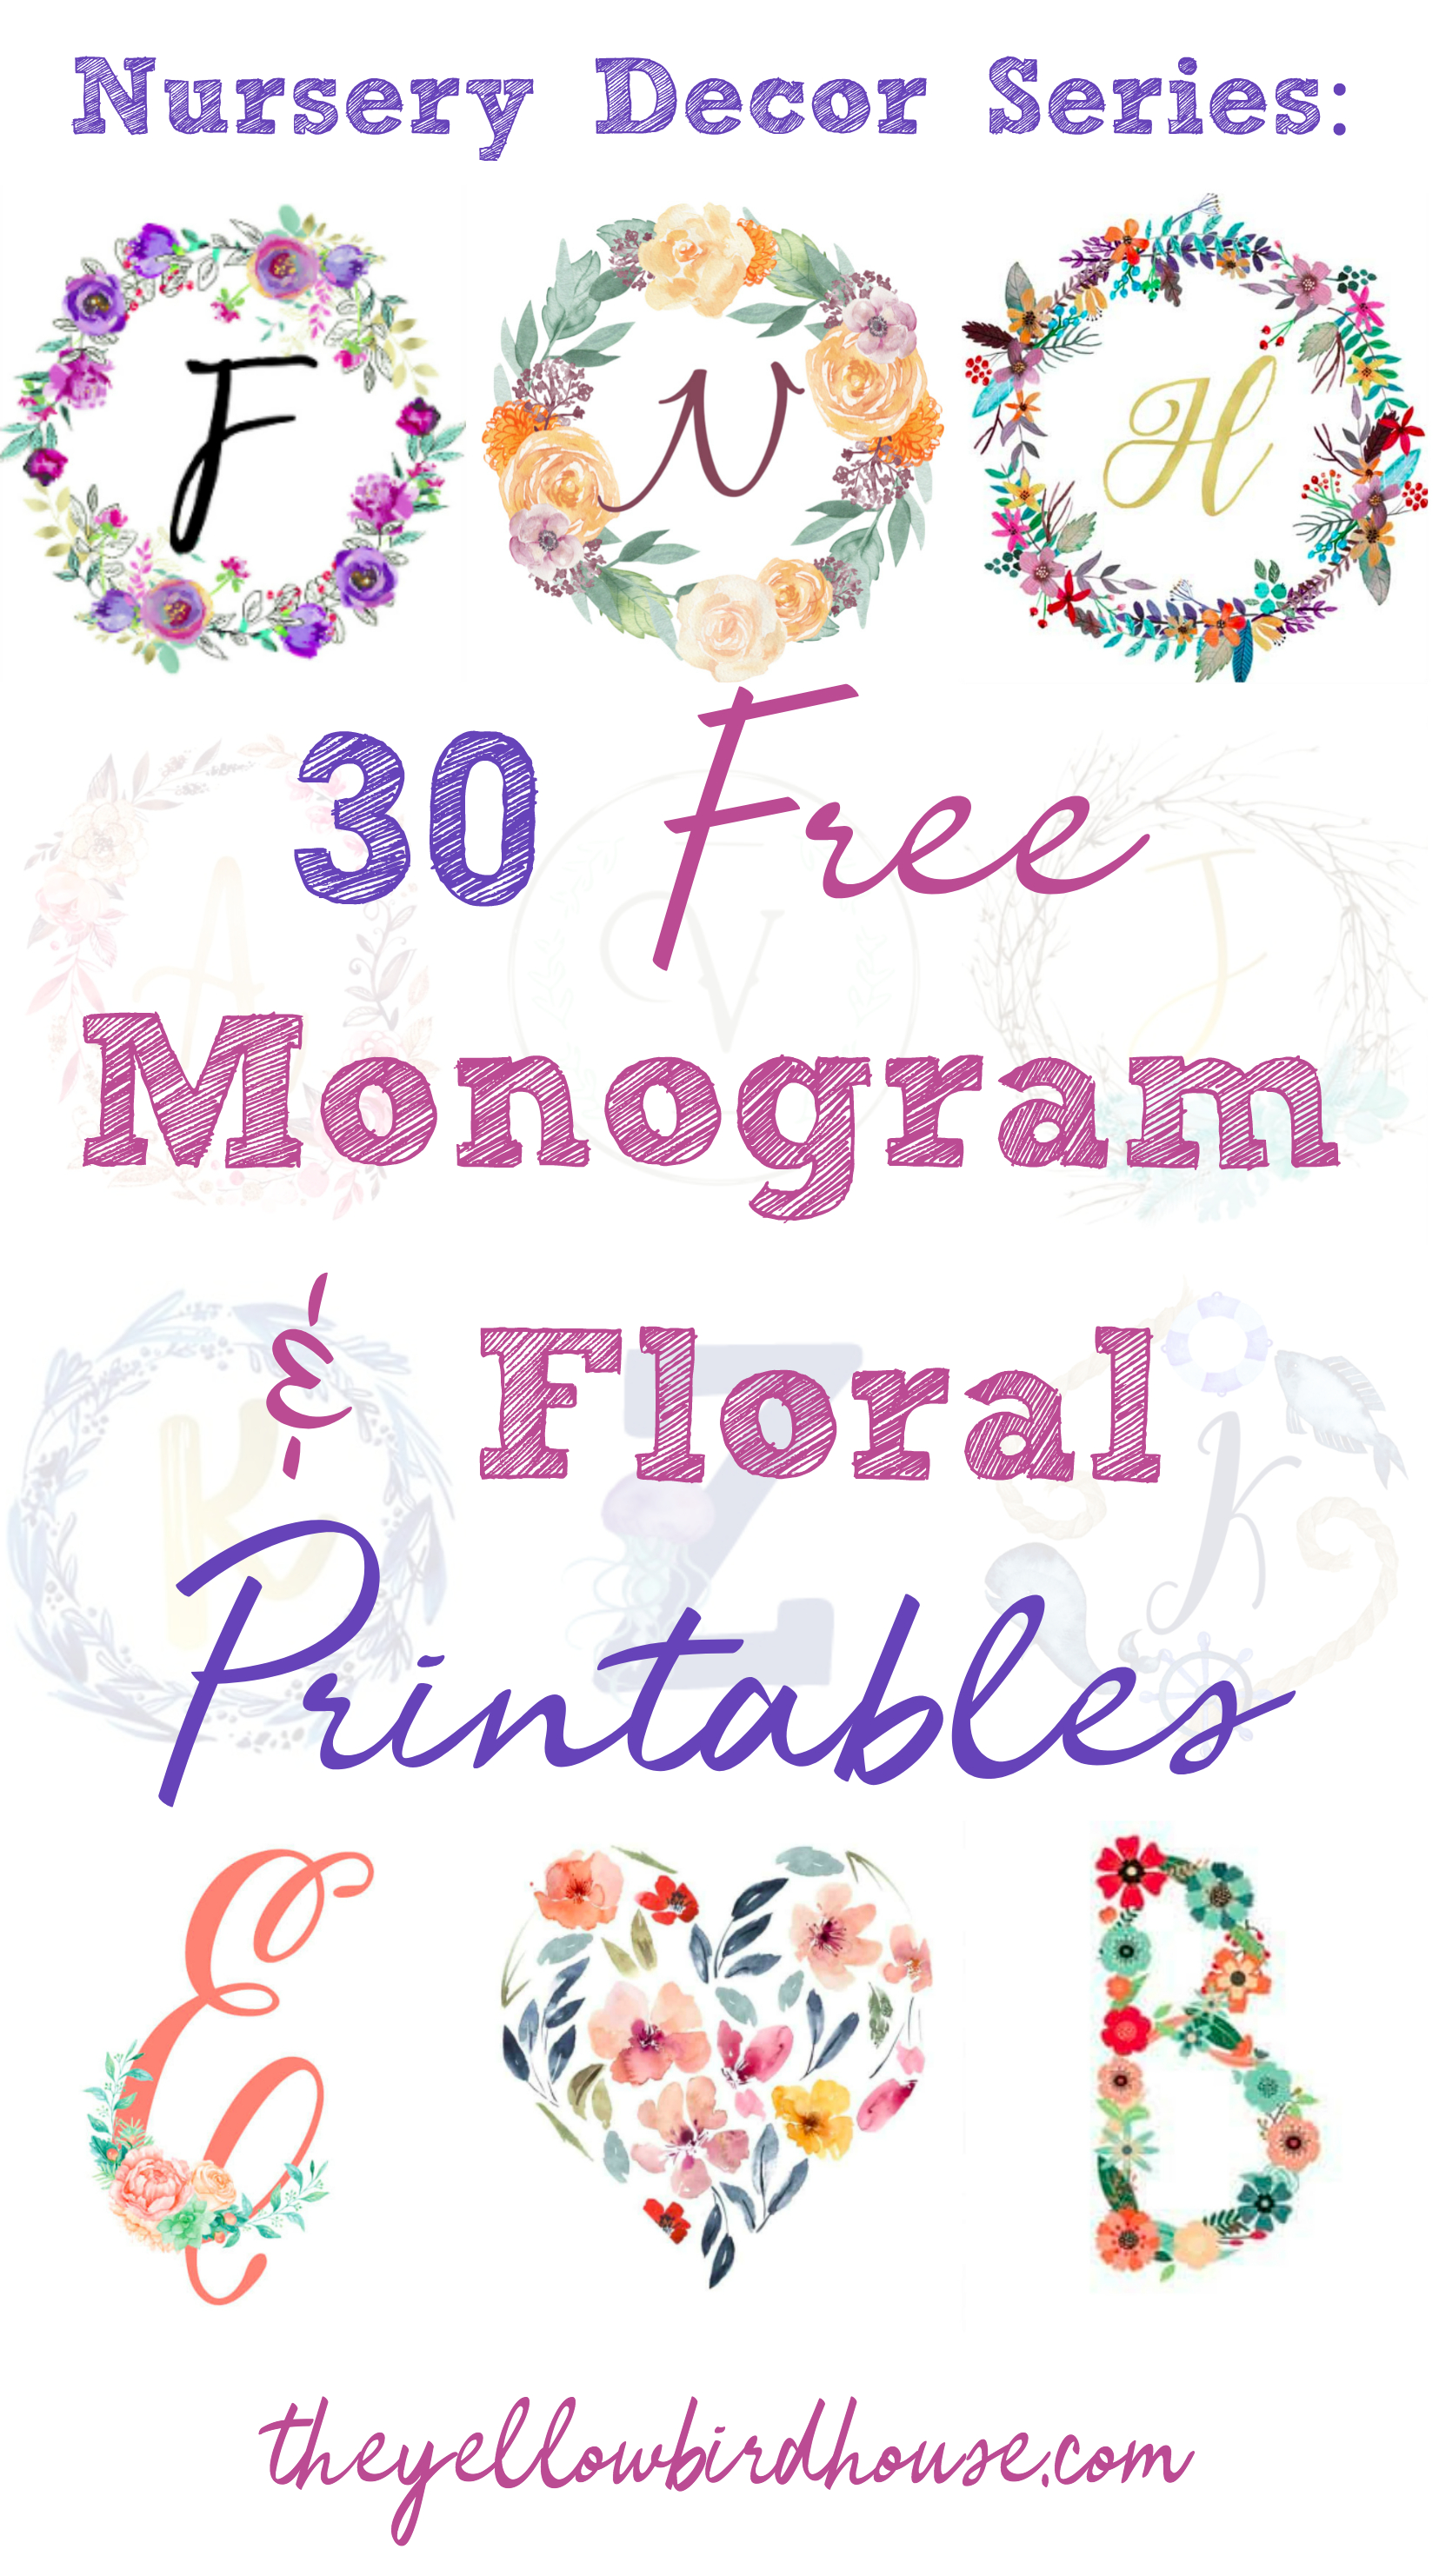 Nursery Decor Series: 30 Free Monogram Printables - Free Printable Monogram Initials